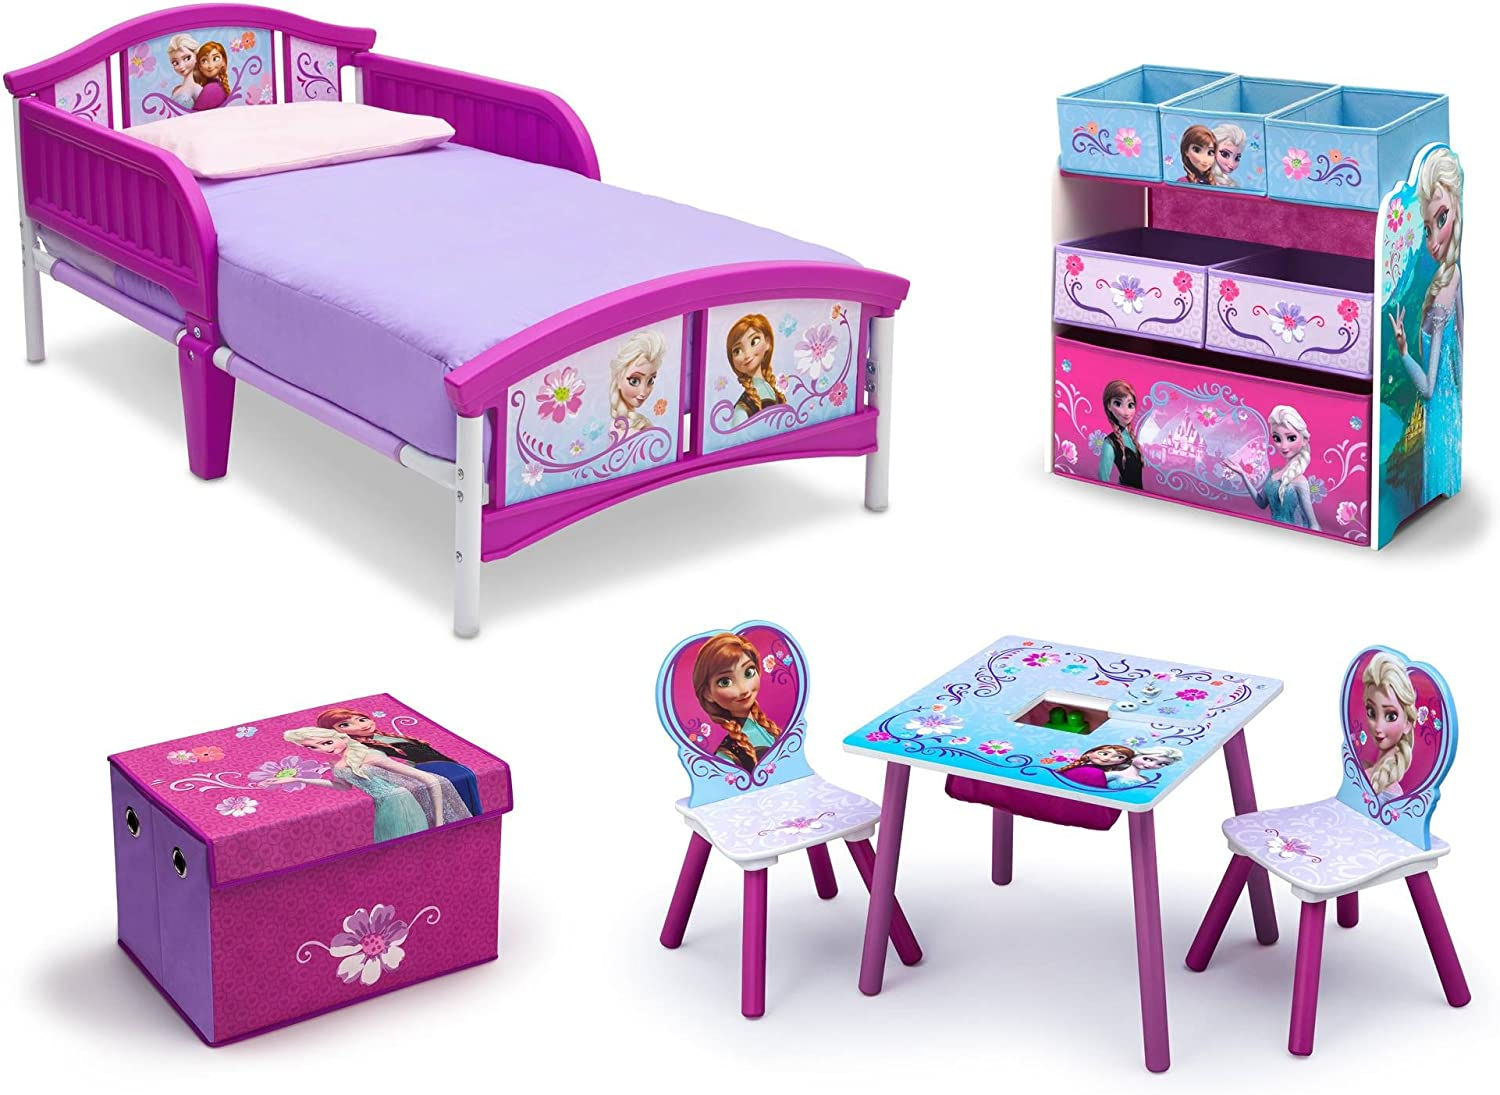 Frozen Bedroom Decor Toddler Kids Bed Disney Frozen Movie Princess Toy Chair Set Girls Toy Chest Storage Amazon Ca Home Kitchen